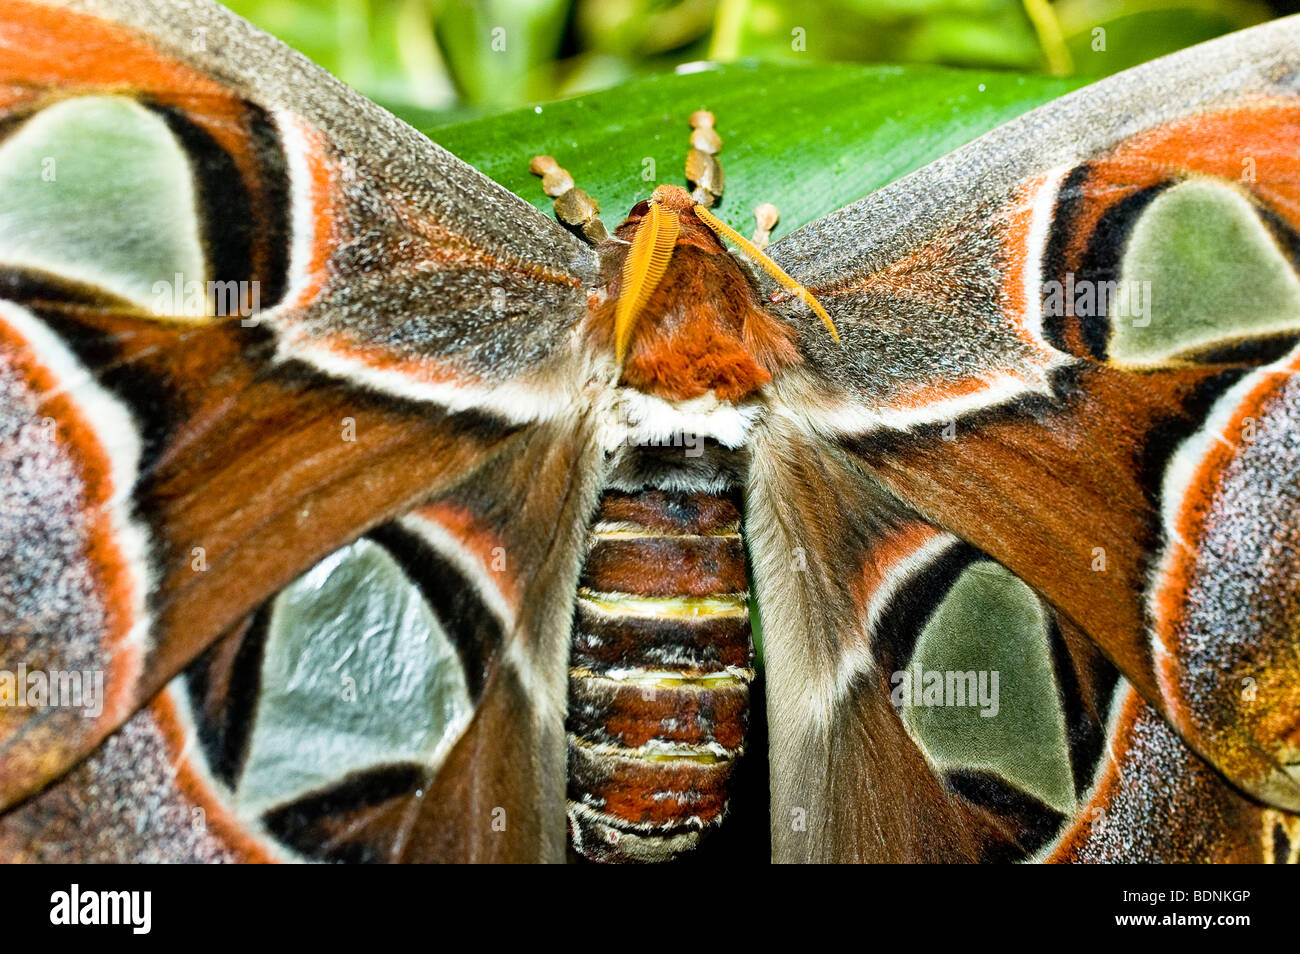 Atlas moth - close-up of the largest moth in the world - Stock Image